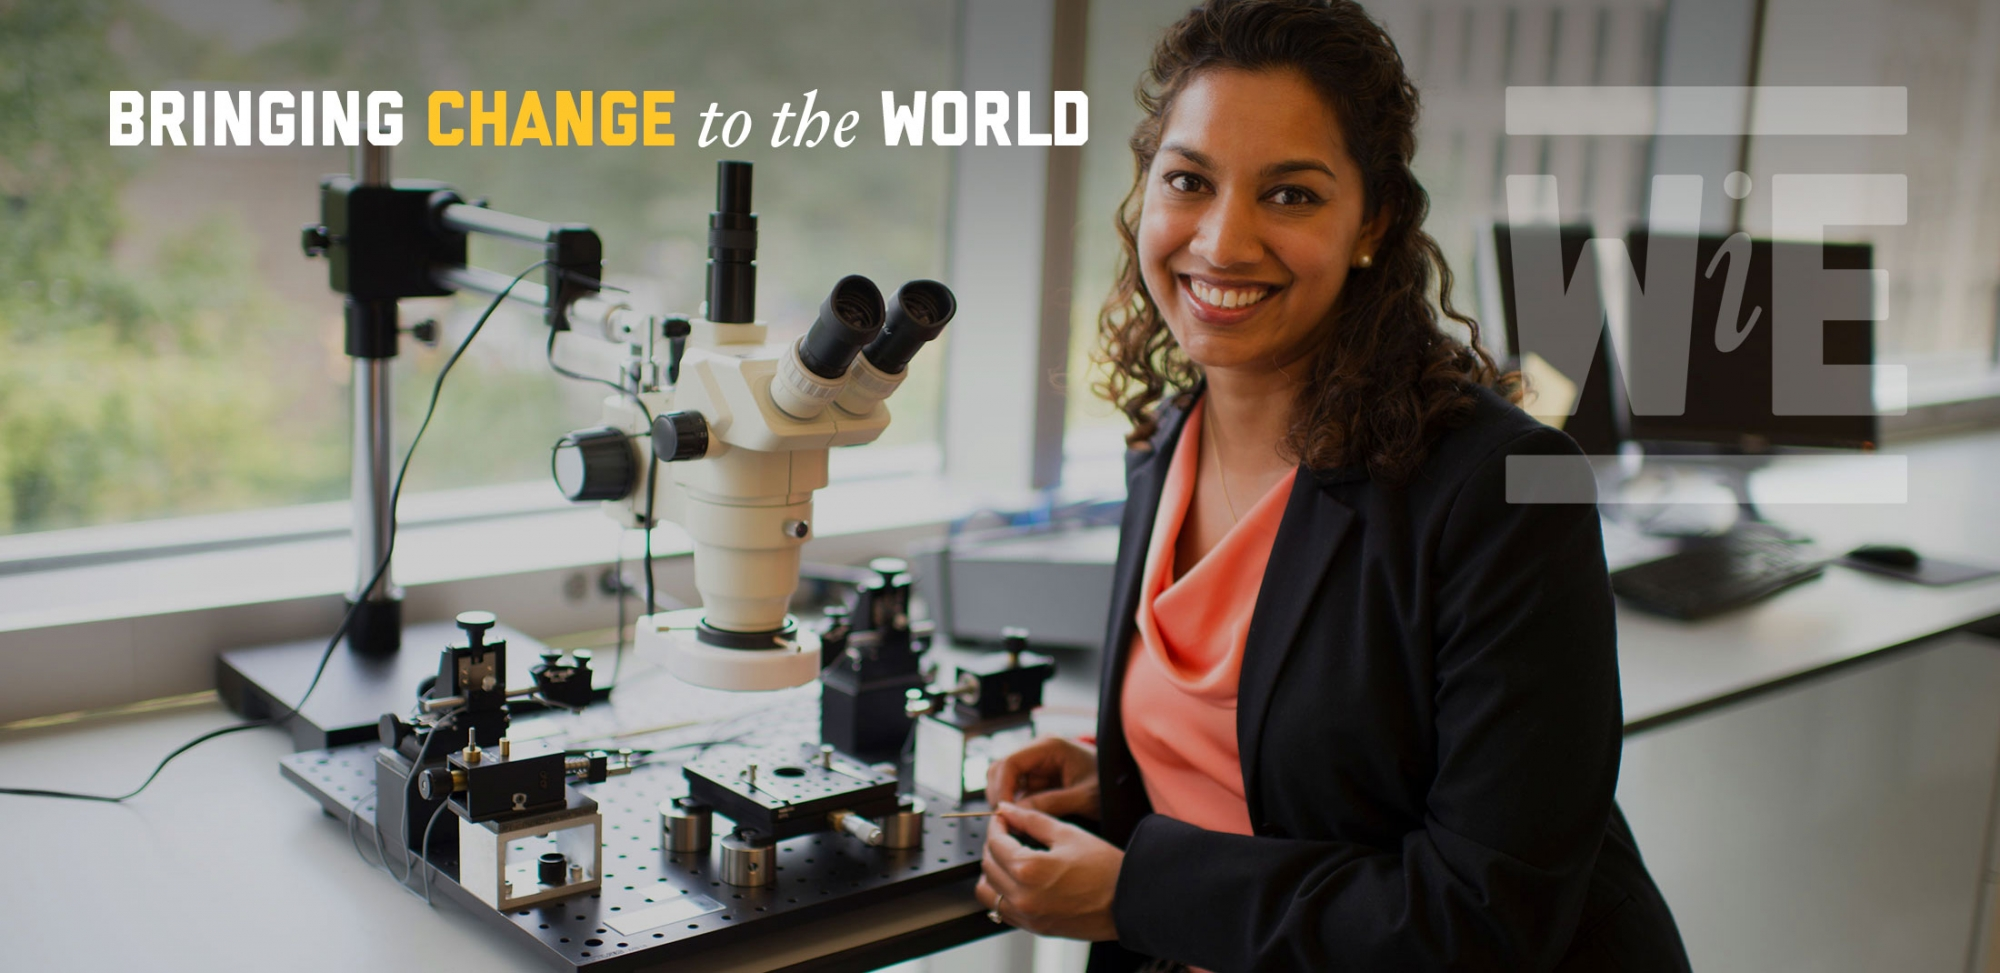 GW SEAS Women in Engineering, Bringing change to the world. Dr. Saniya LeBlanc works to develop technologies that address the growing demand for energy.